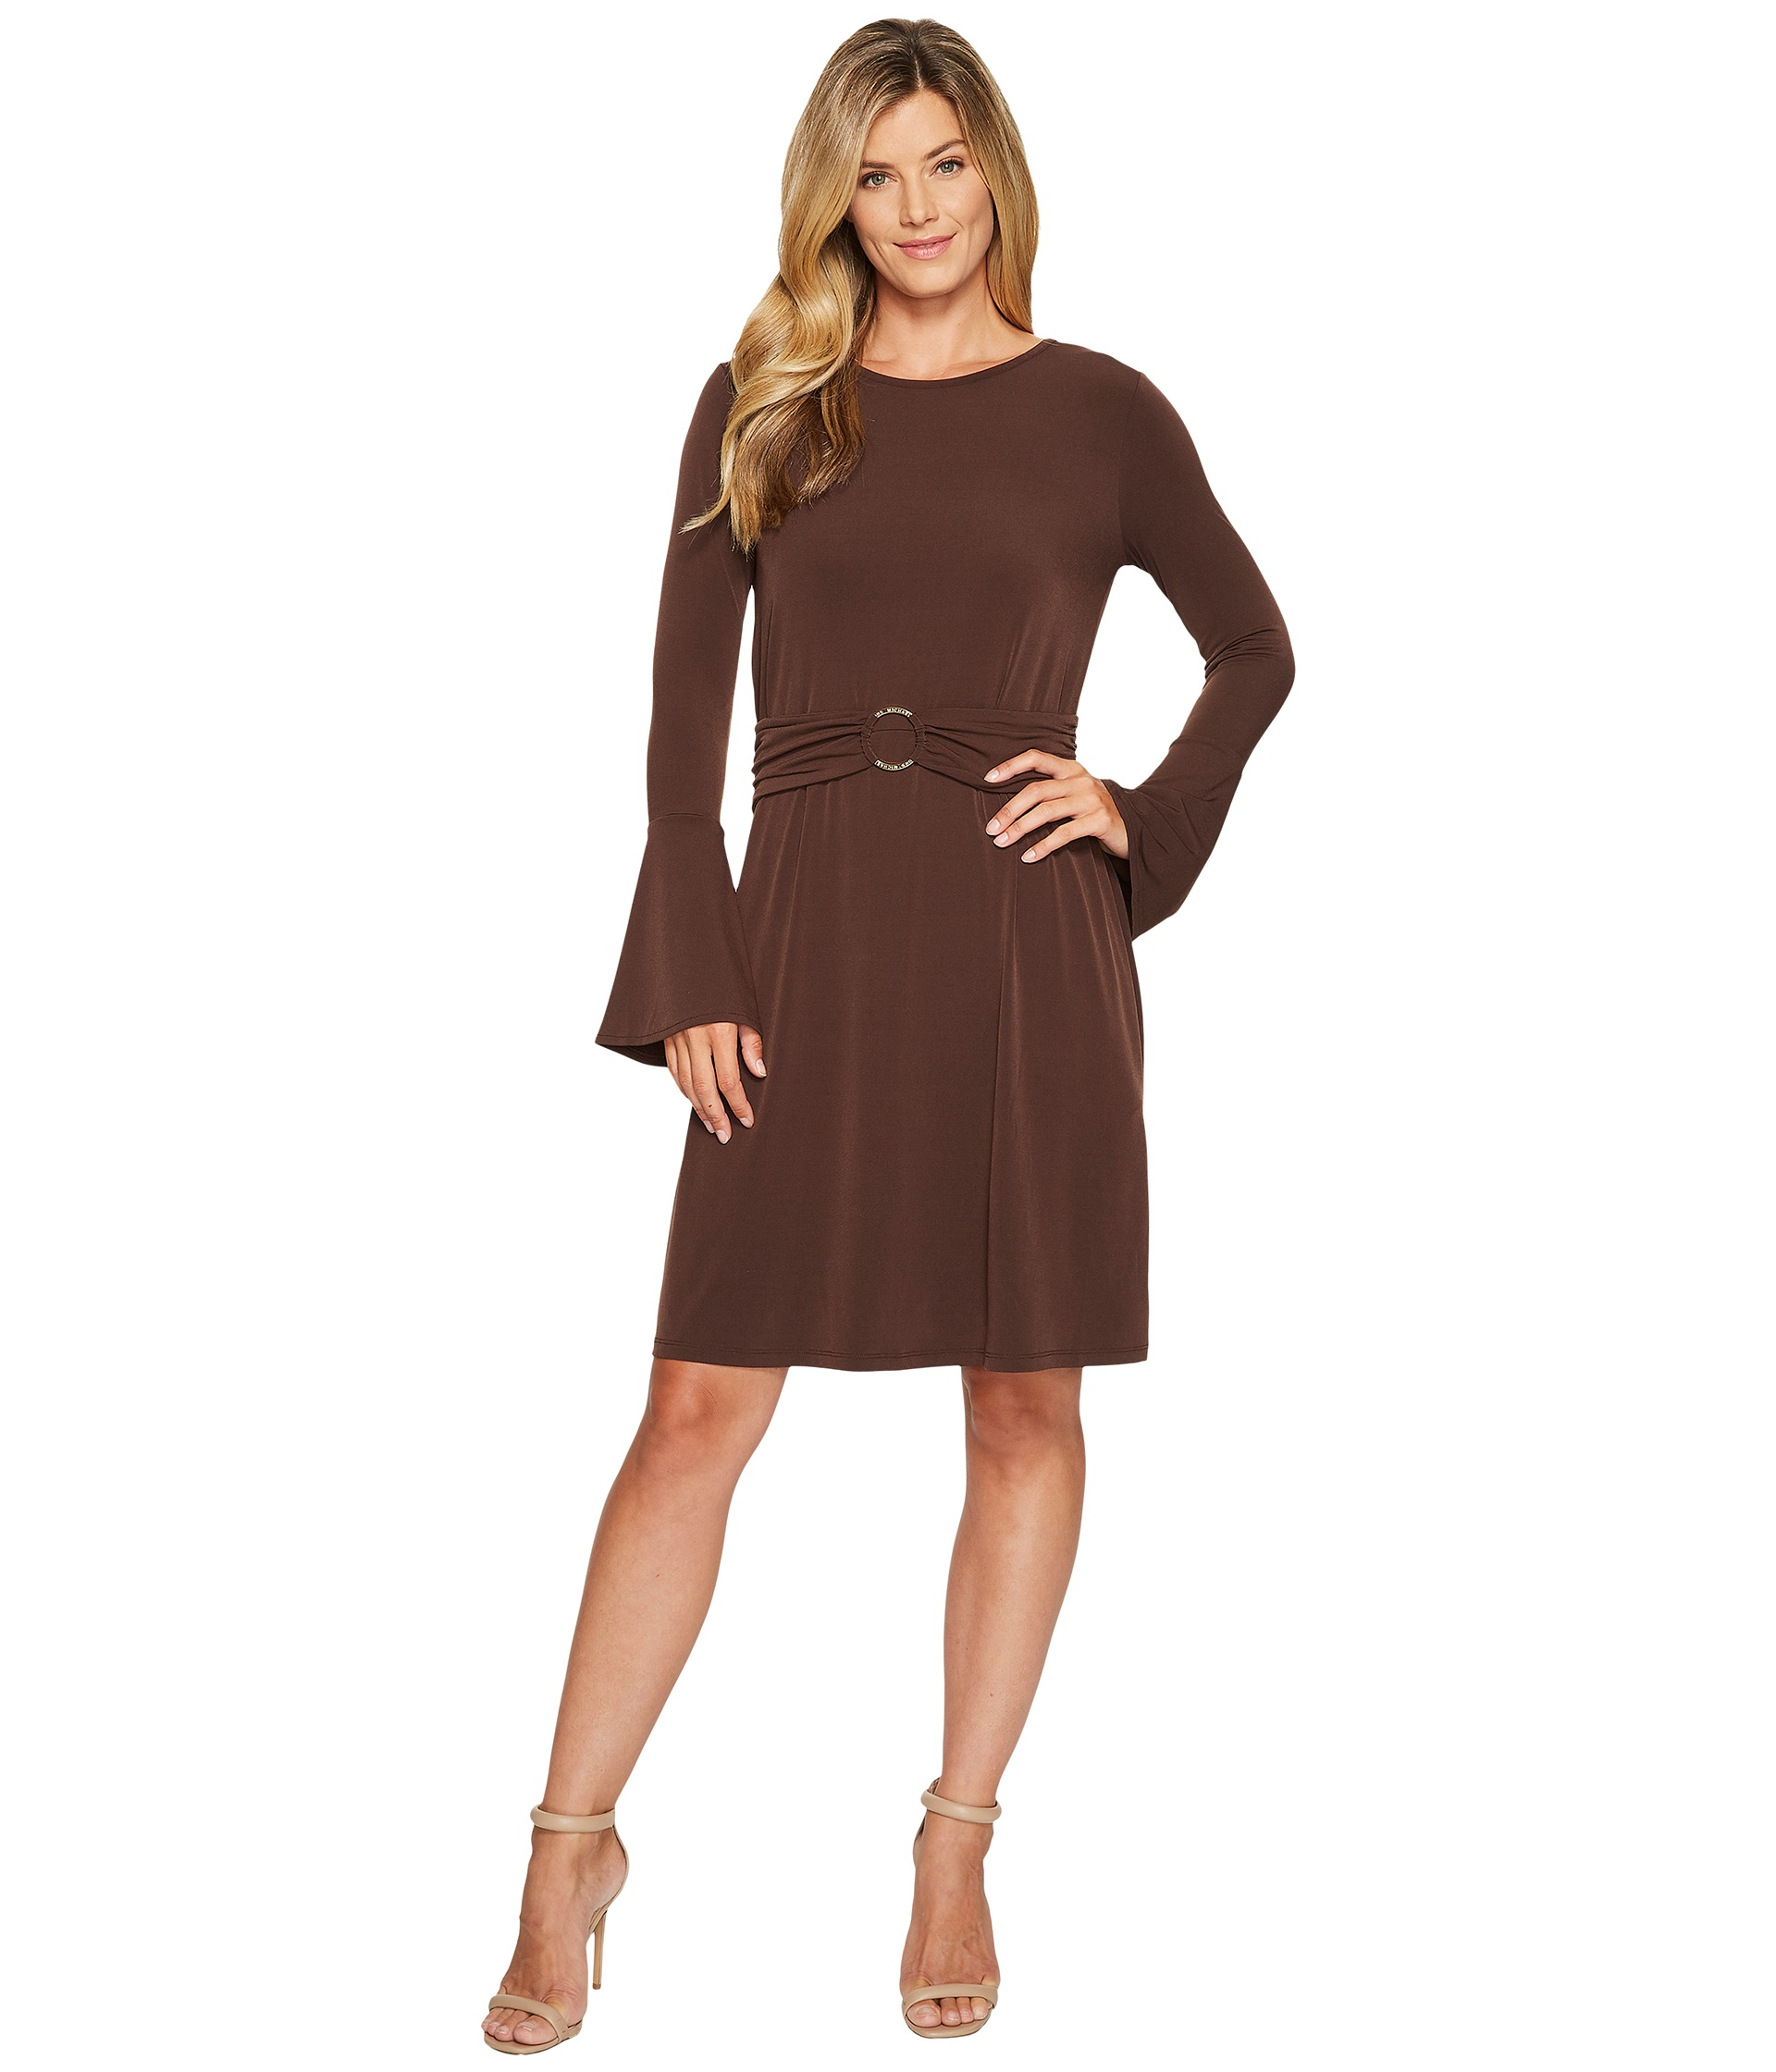 Shop women's cocktail dresses at imriocora.ml Discover a stylish selection of the latest brand name and designer fashions all at a great value.